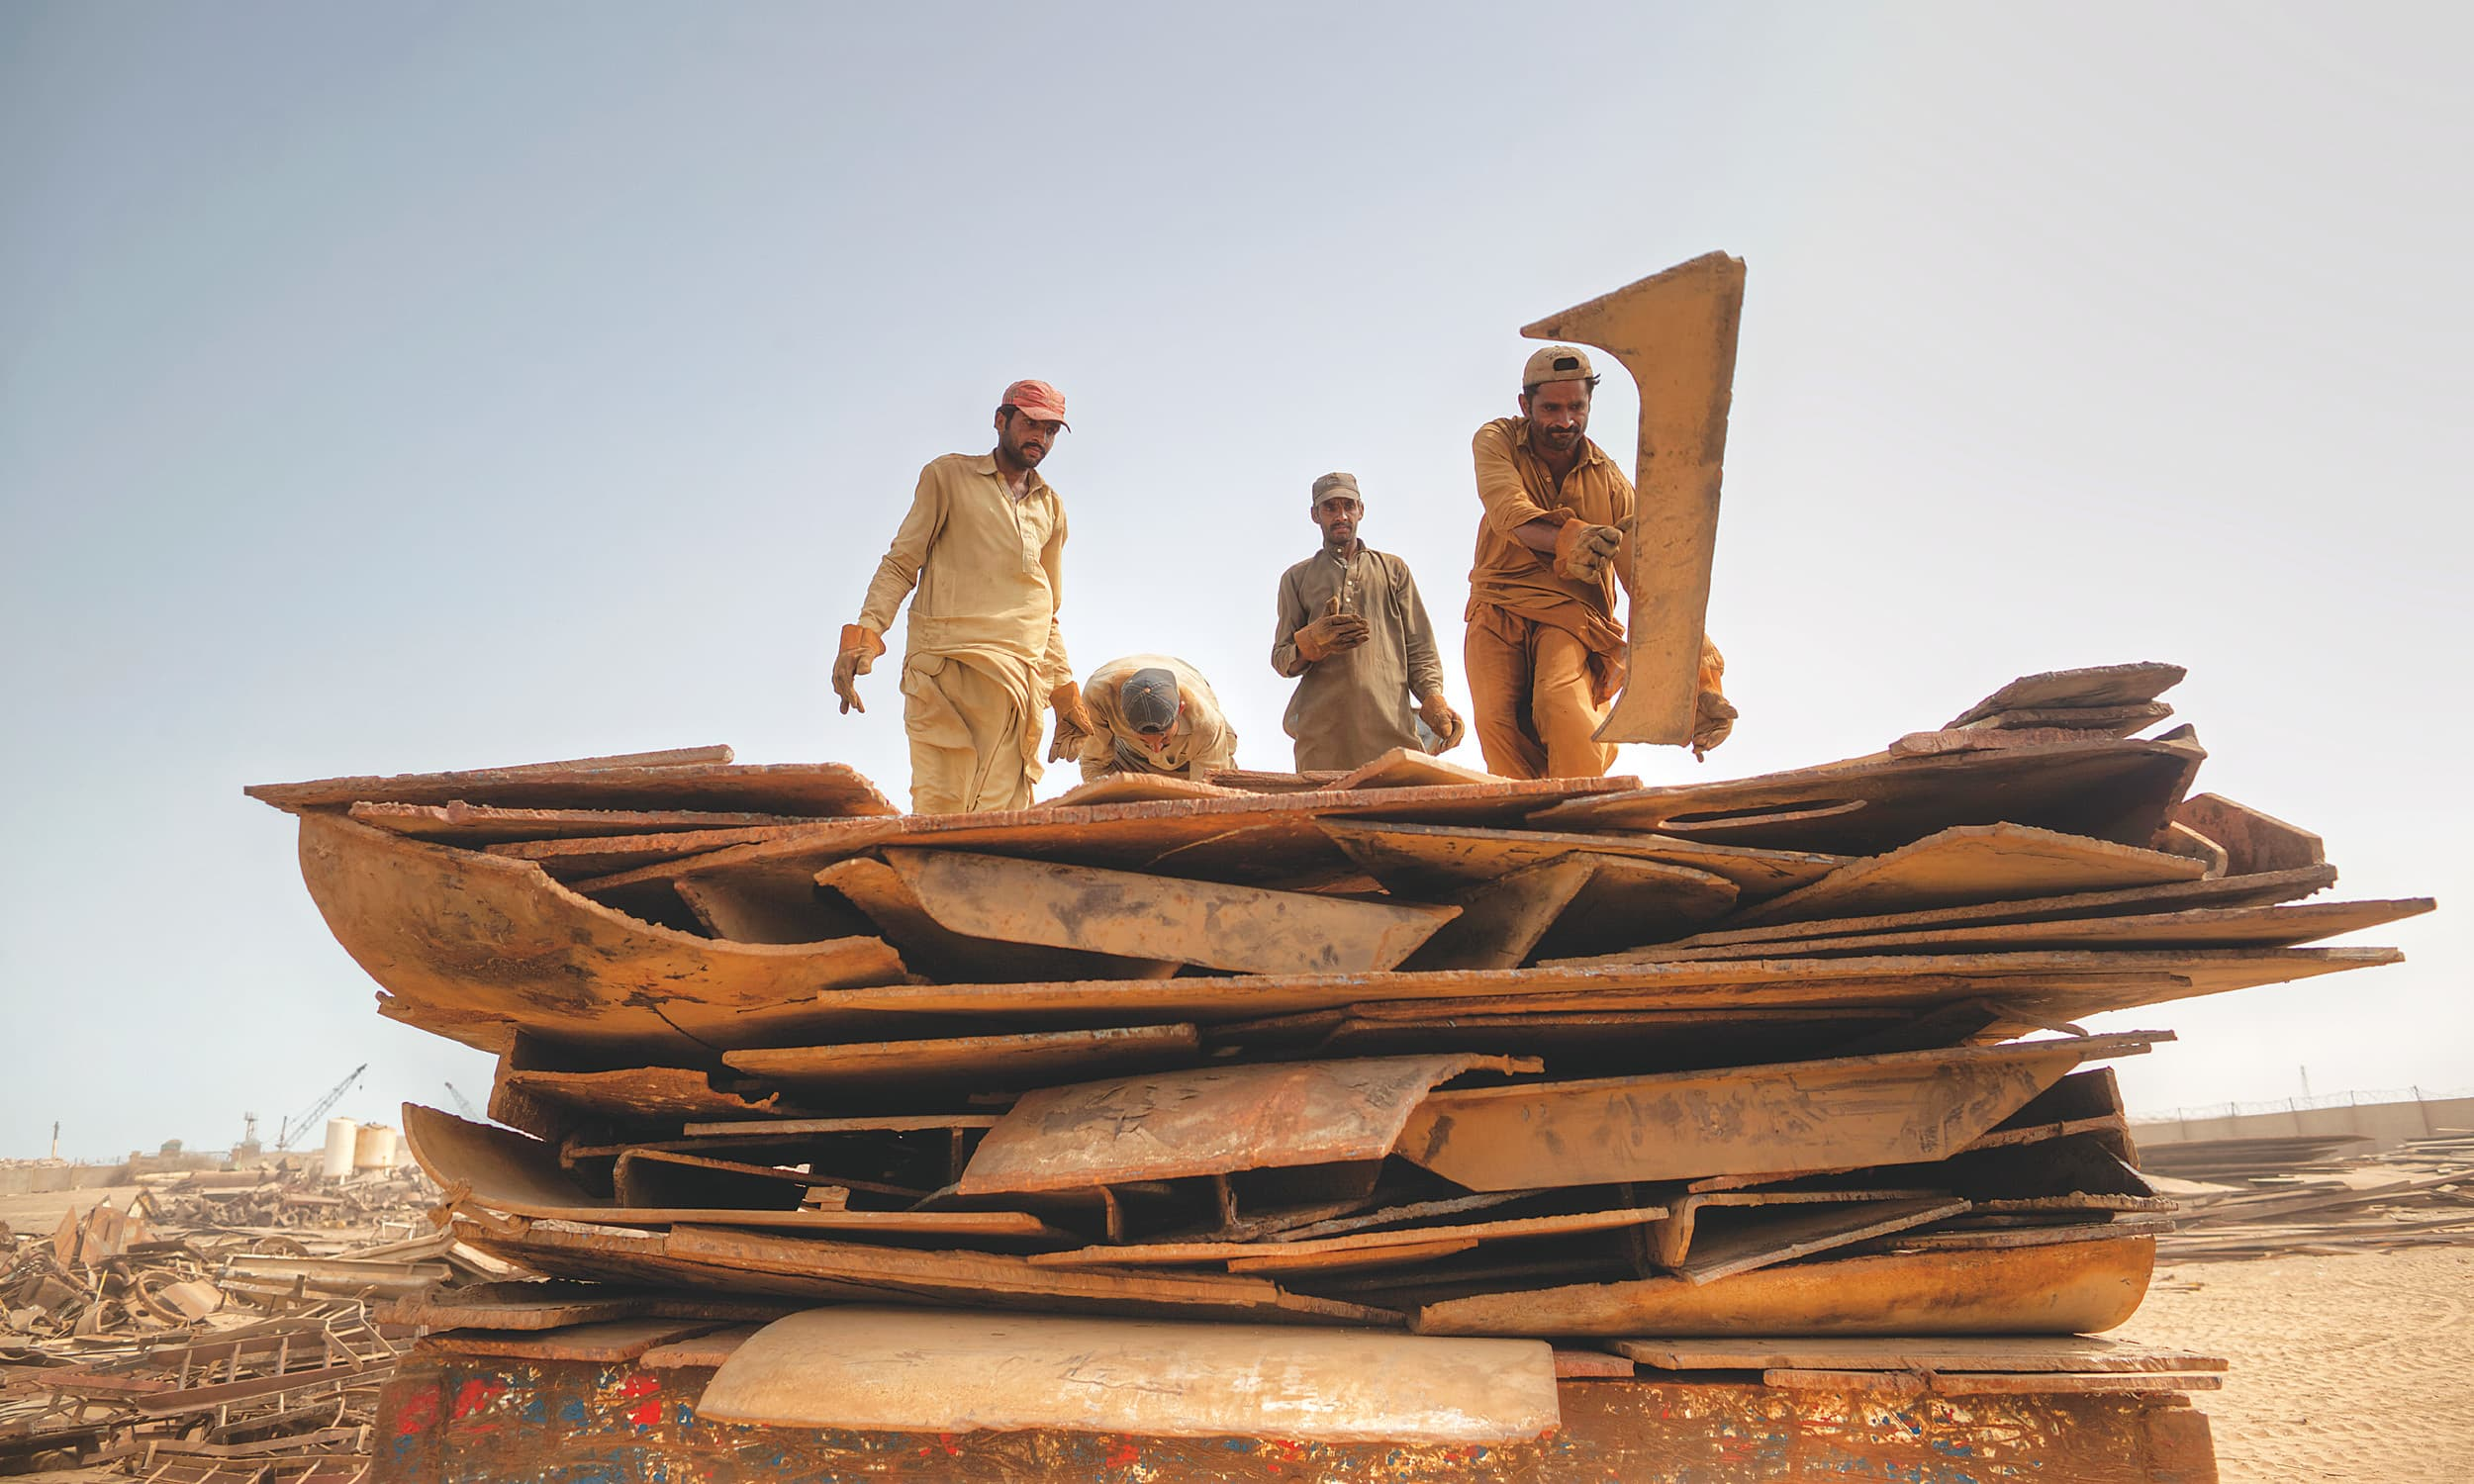 Labourers stack the remains of a ship onto a truck at Gadani, Balochistan | Kohi Marri